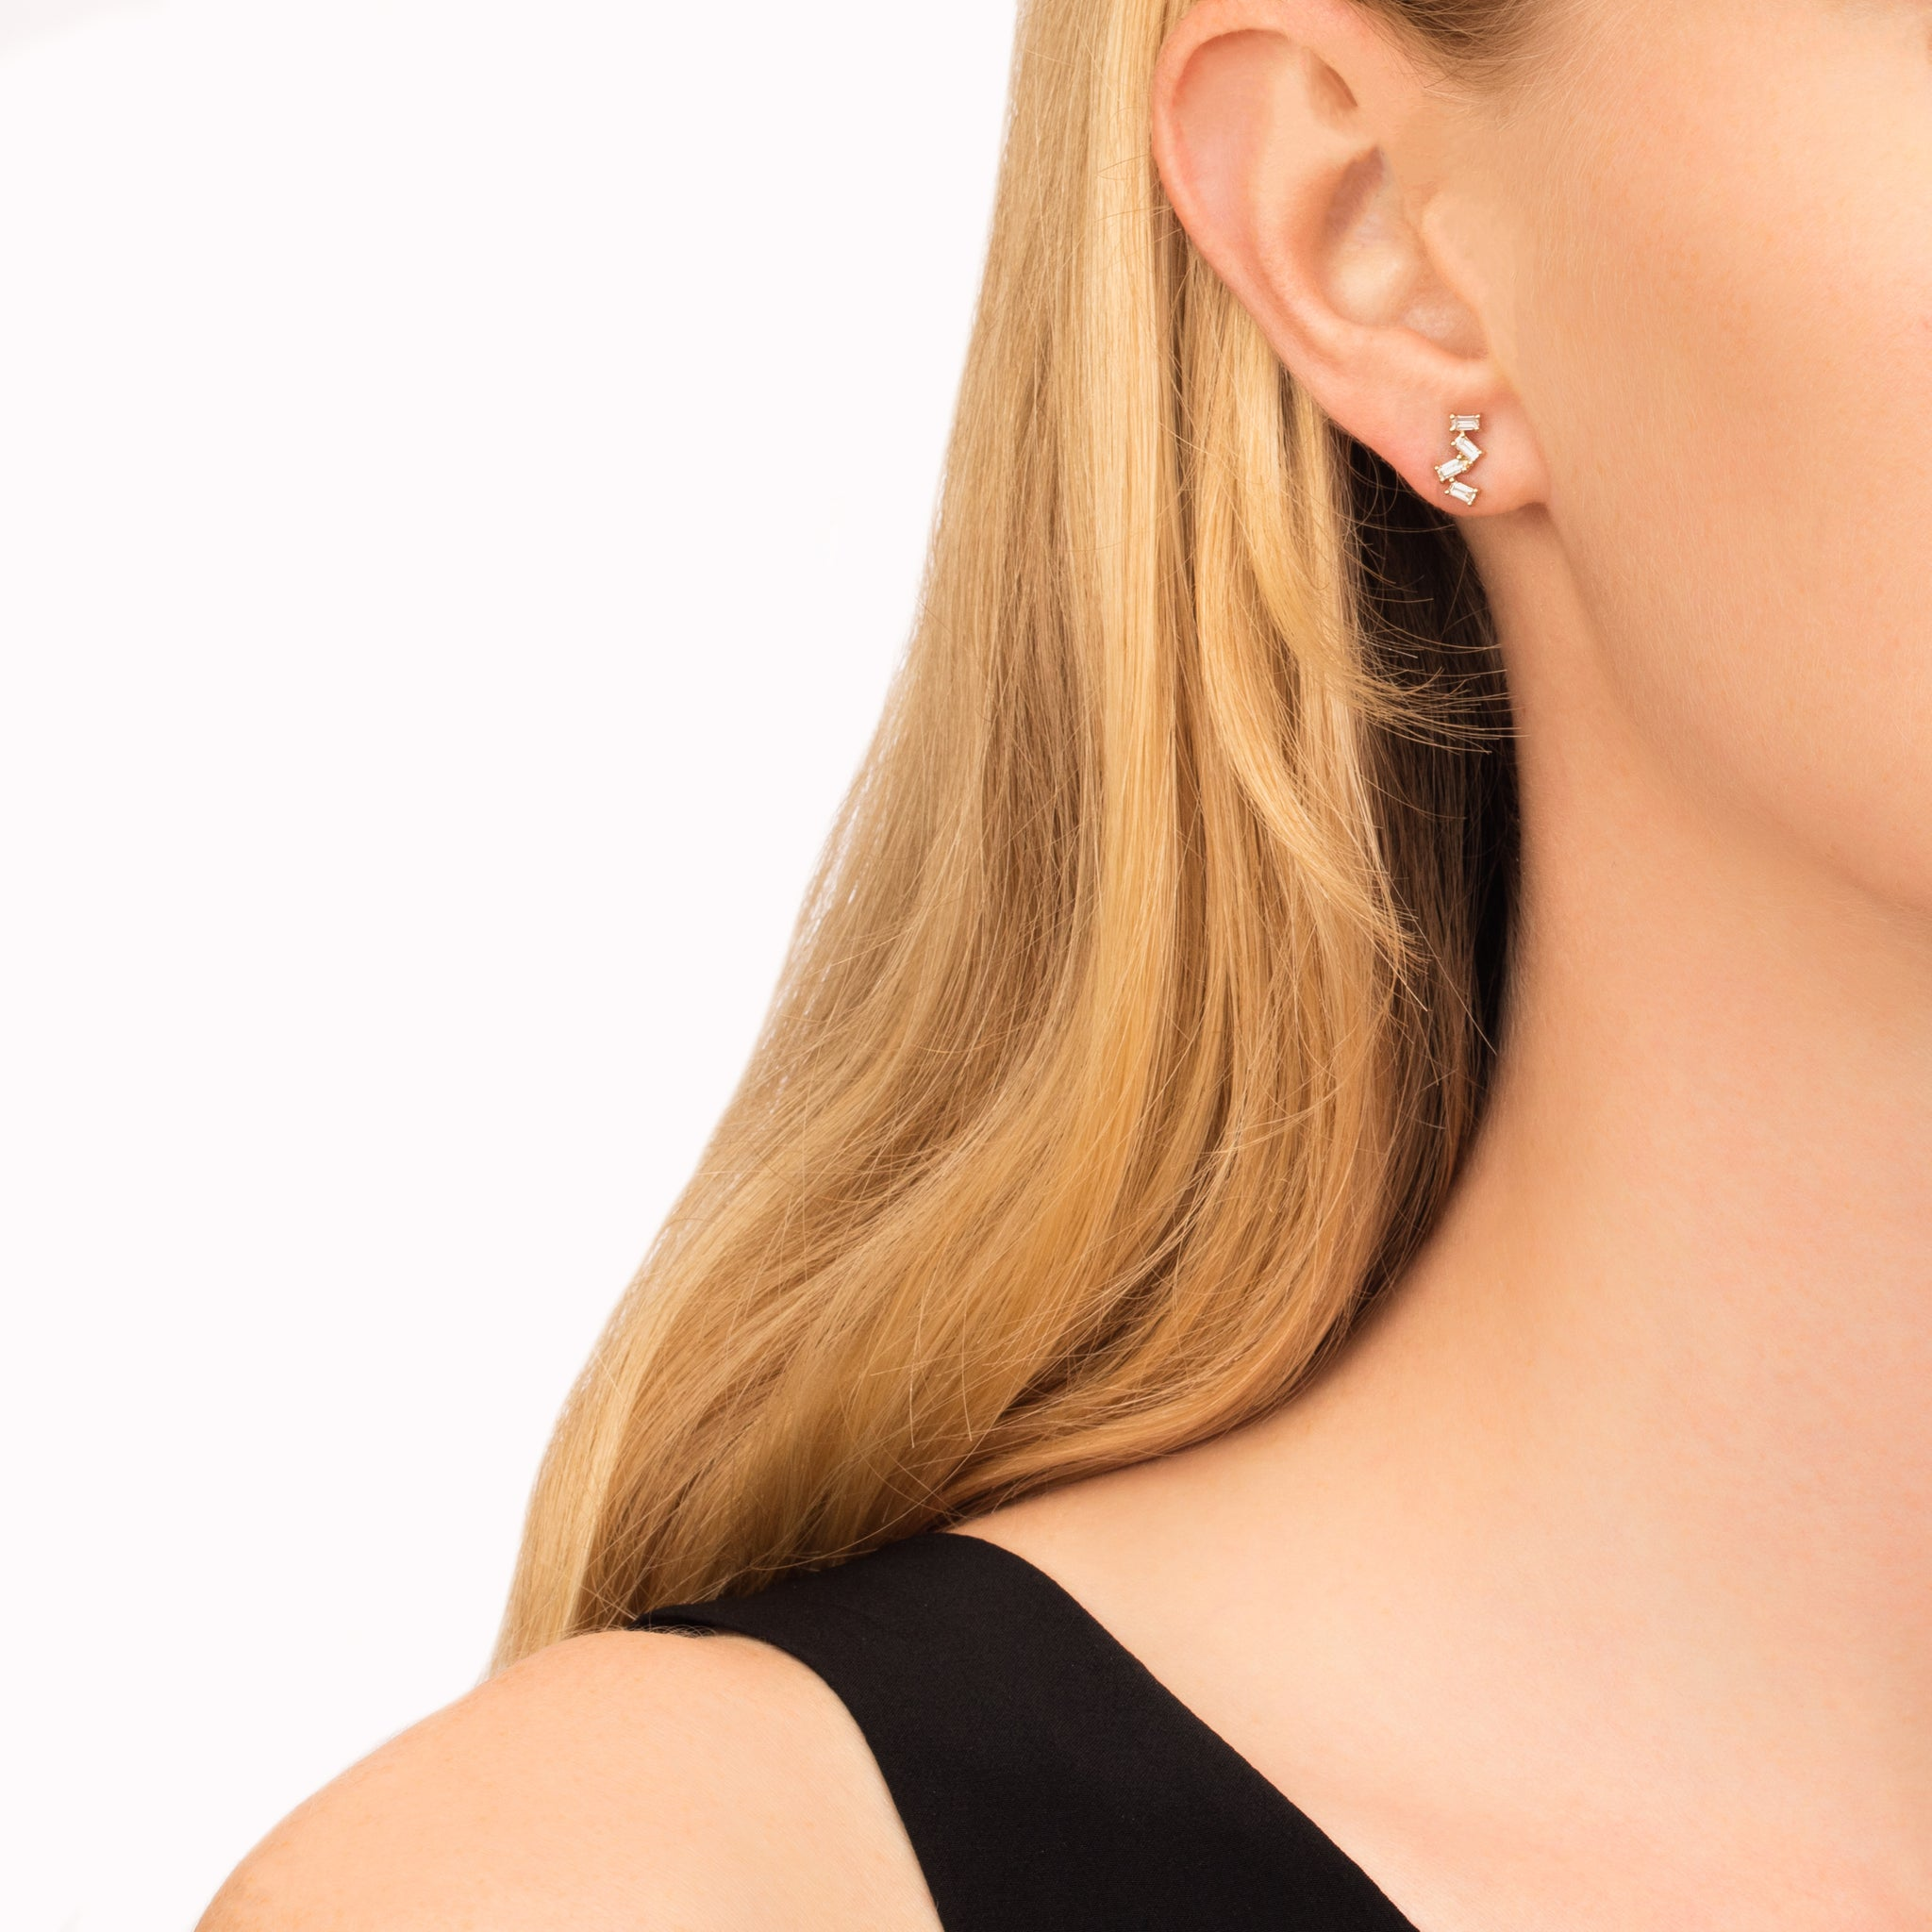 Spilling Baguette Stud Earring - Kismet by Milka - Earrings | Broken English Jewelry